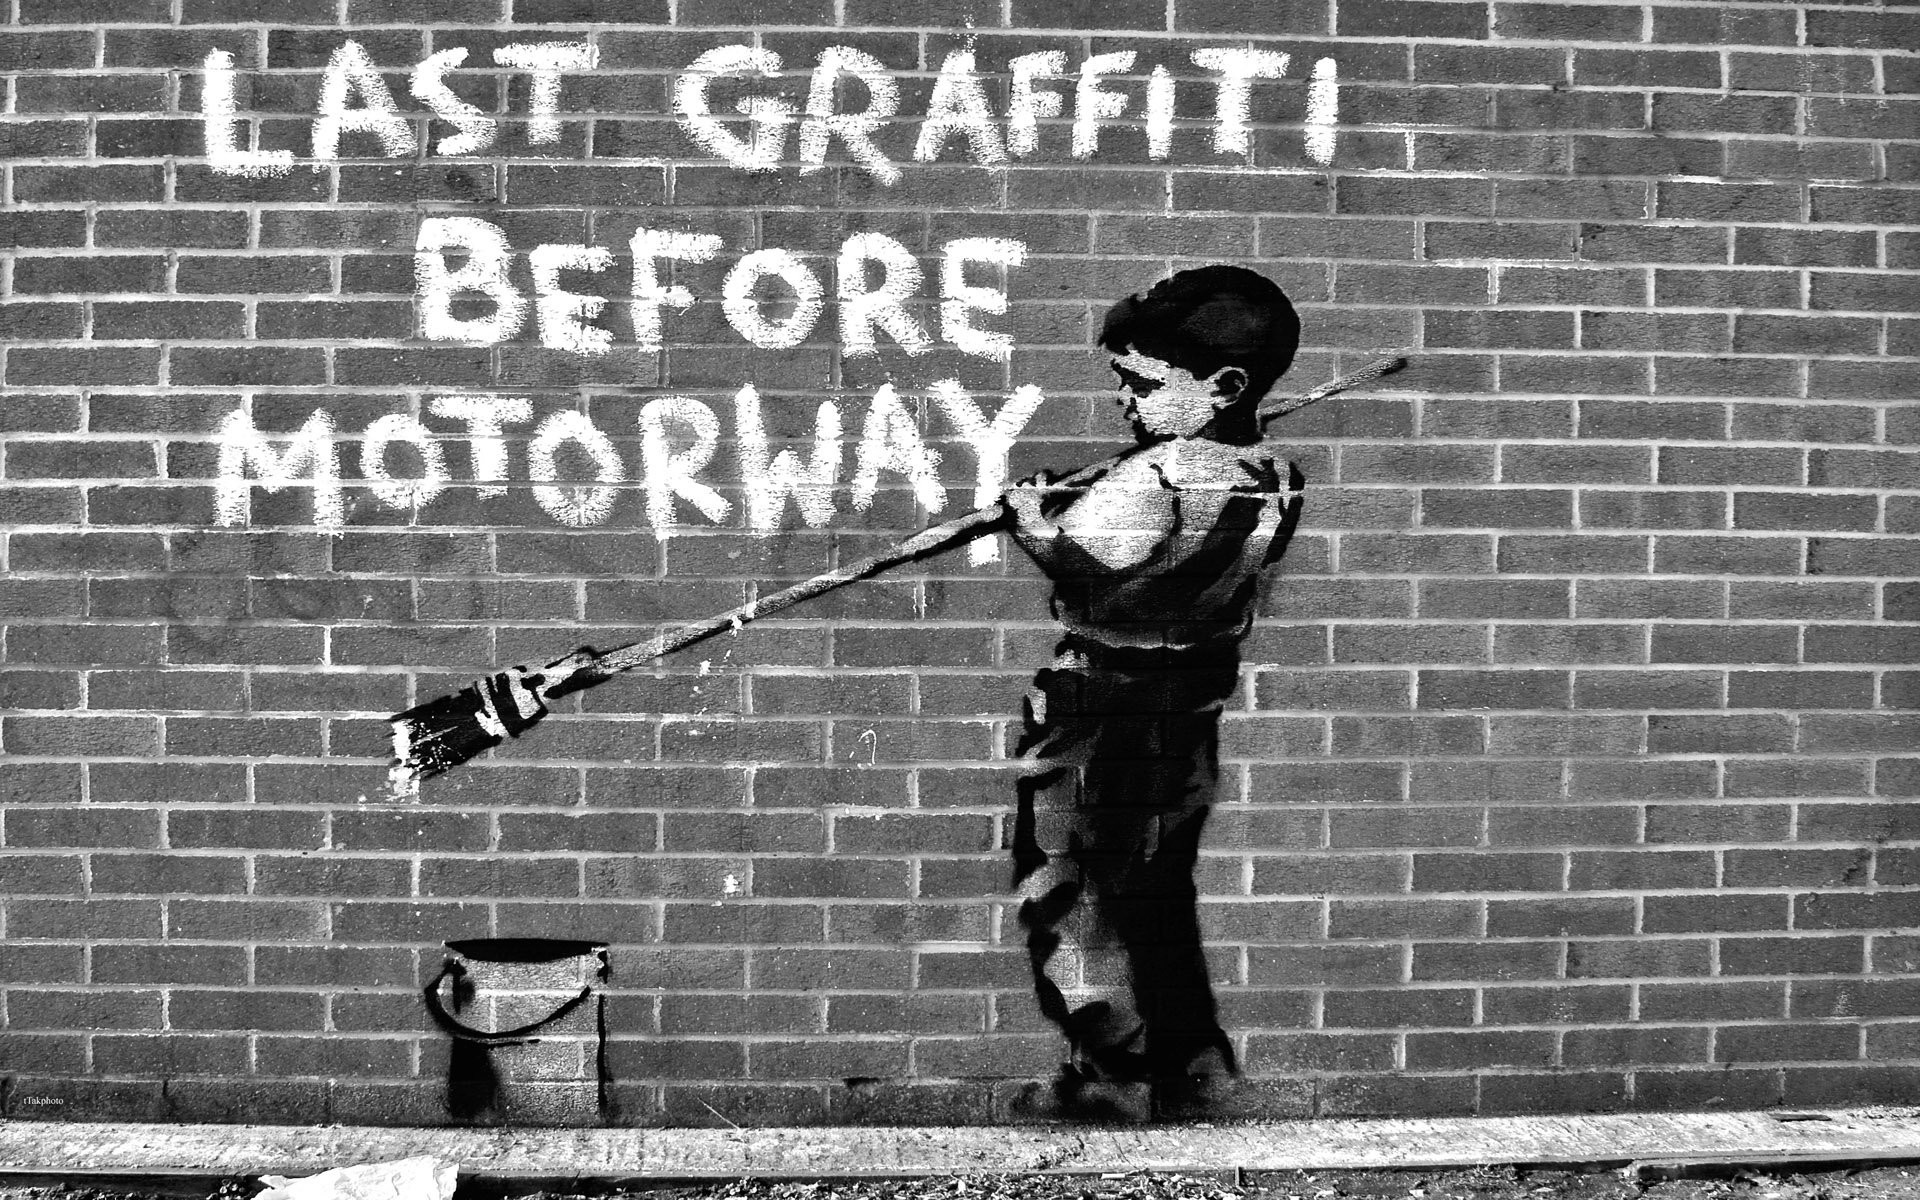 Banksy Last Graffiti Before Motorway .